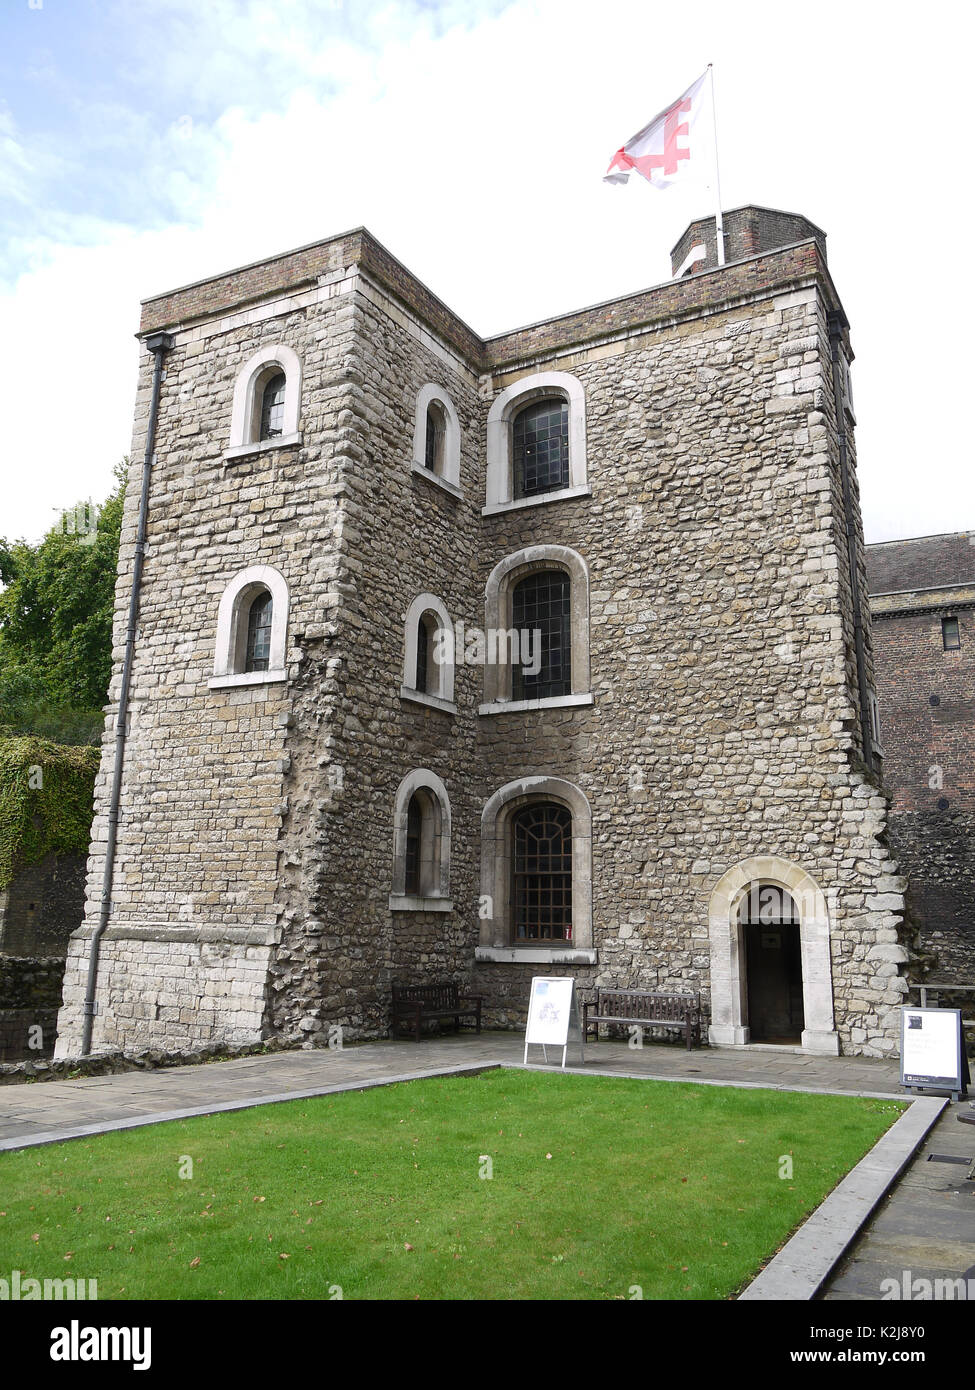 London, UK, 10th Aug, 2017. The Jewel Tower at Westminster in London Stock Photo